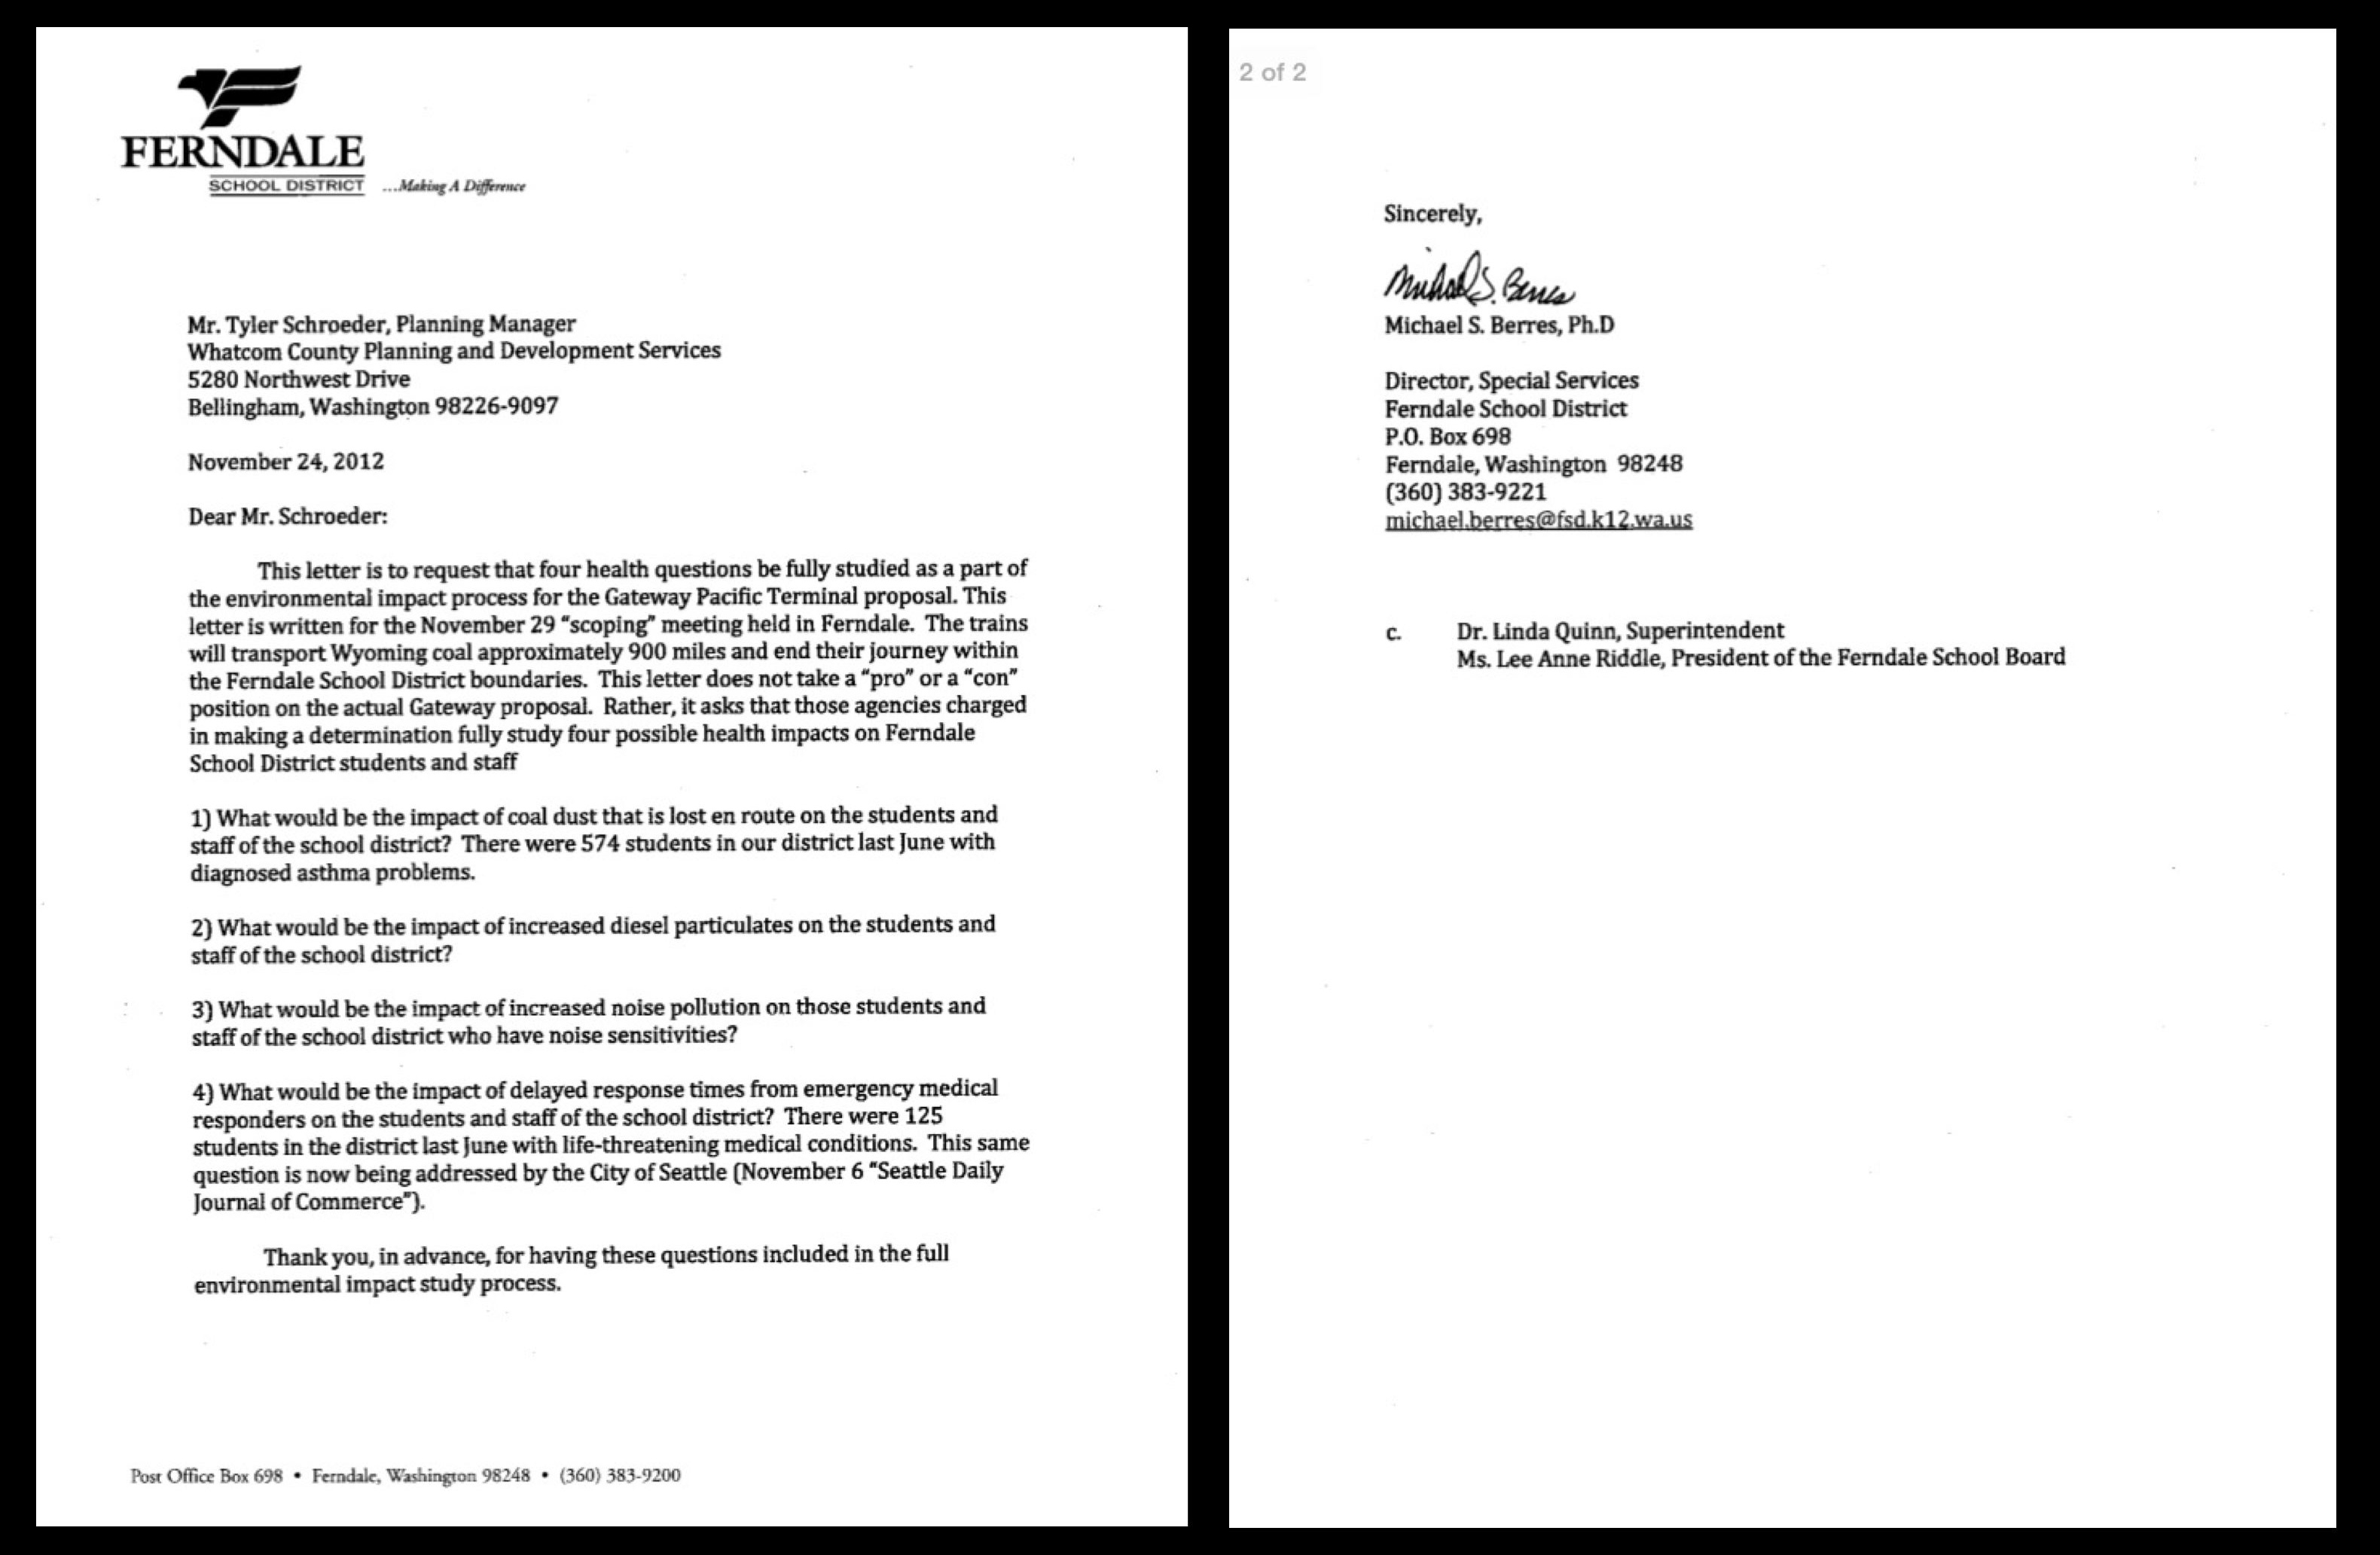 Sample Cover Letter For Project Proposal – Sample Cover Letter for Project Proposal